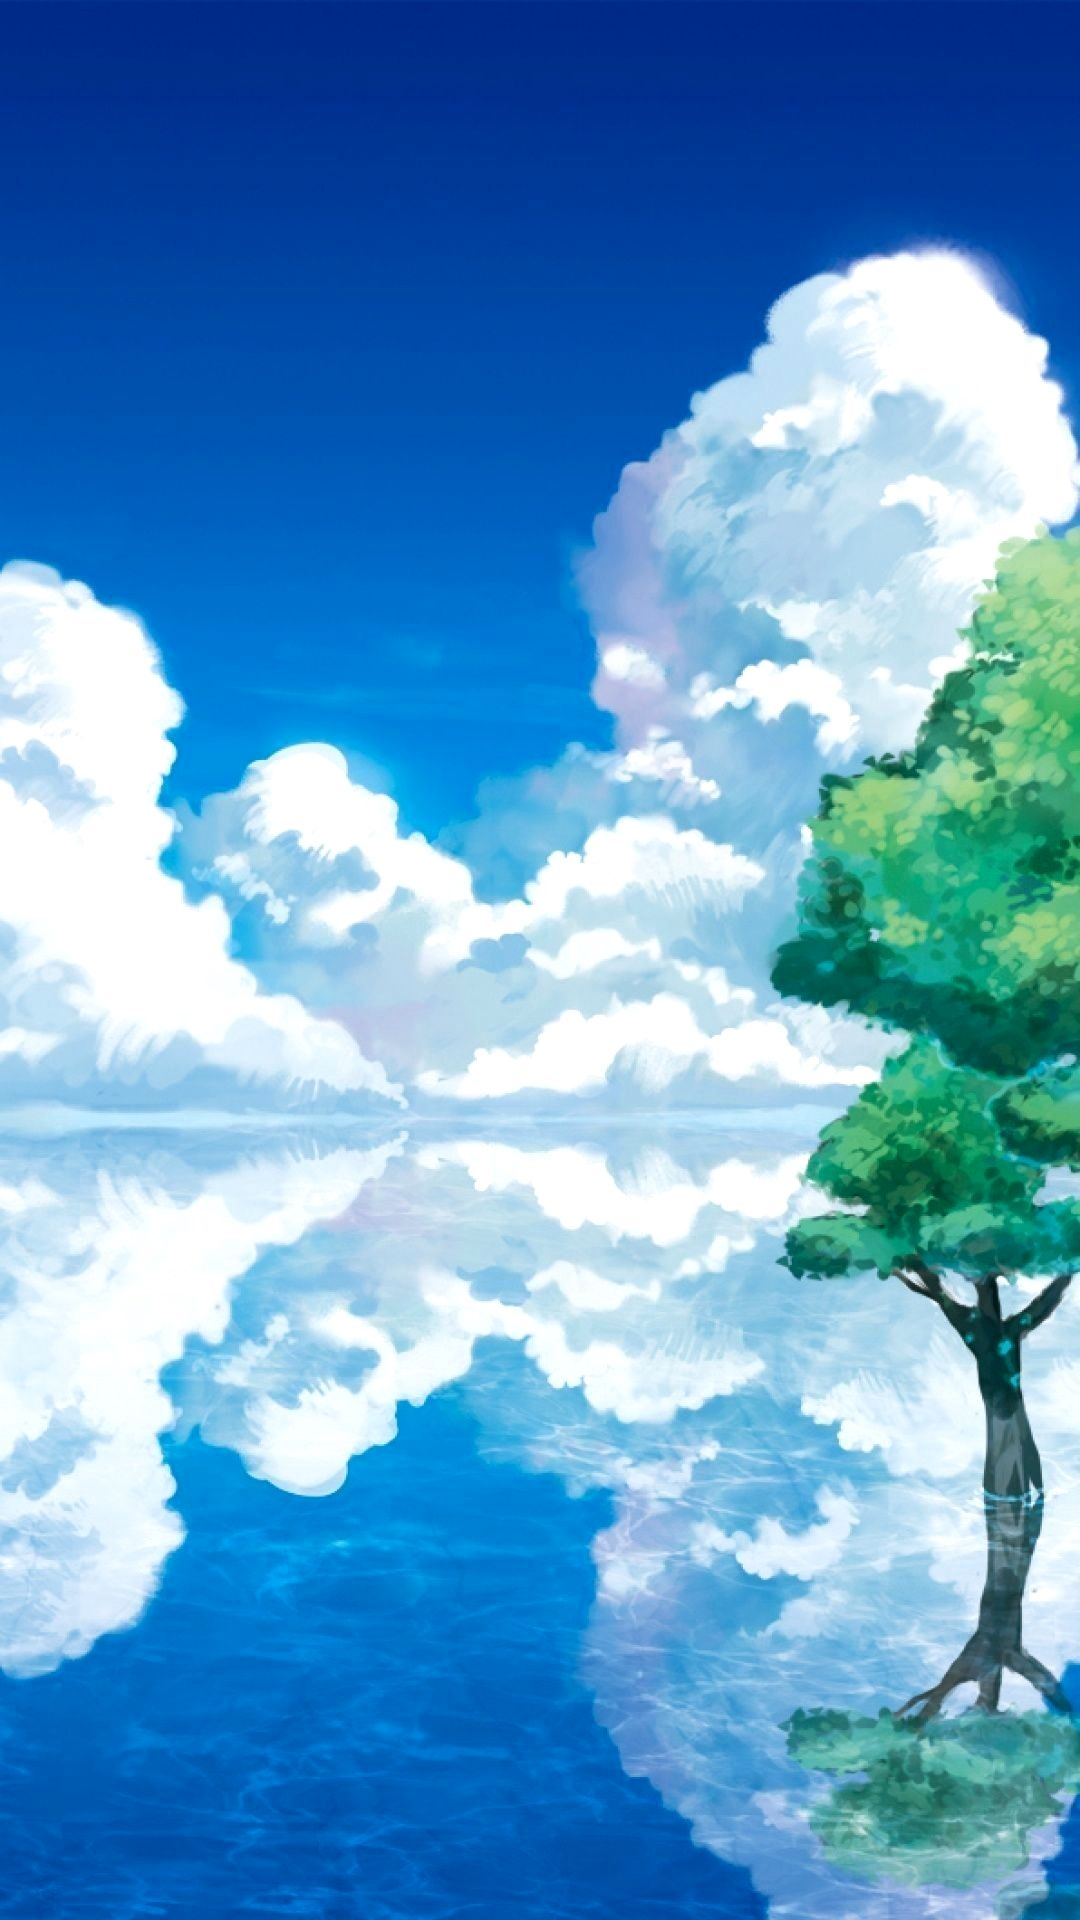 Anime Scenery Wallpaper 4K Phone Ideas Check more at https